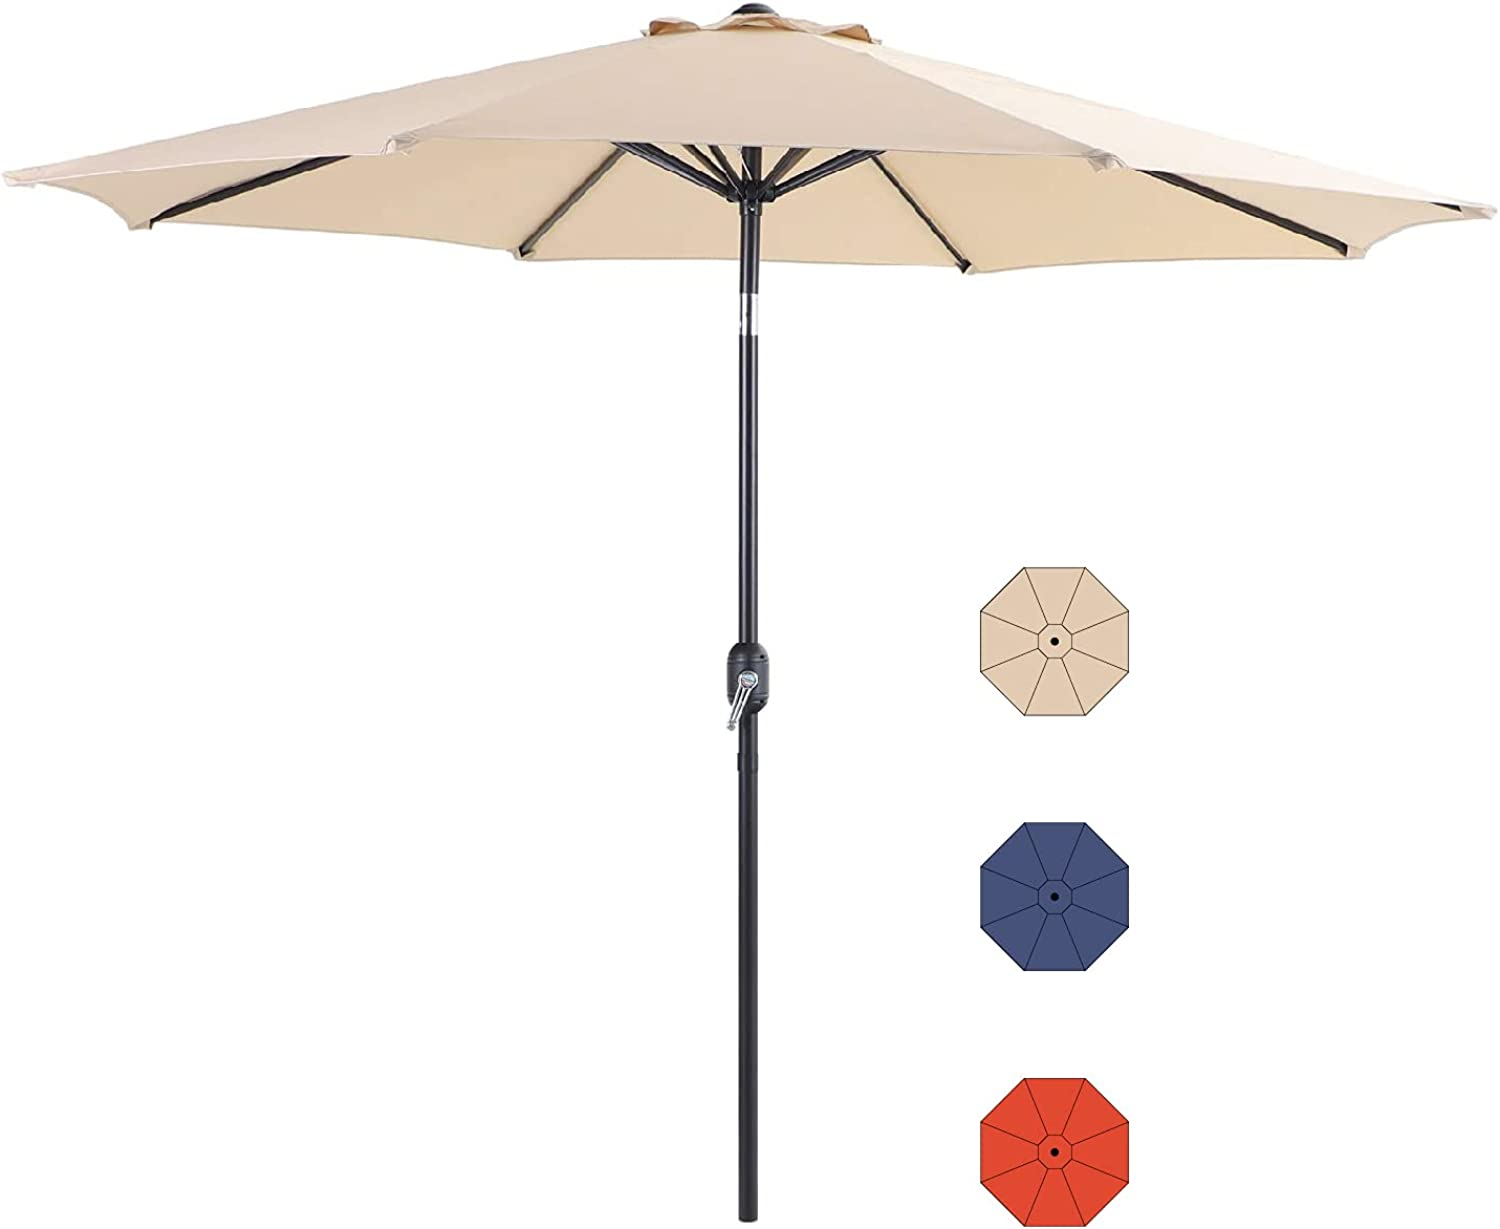 Green Party Patio Umbrella for Outdoor 10ft Outdoor Umbrella 8 Sturdy Ribs Market Patio Table Umbrella with Push Button Tilt Outdoor Patio Umbrella for Garden Lawn Deck Pool and Beach